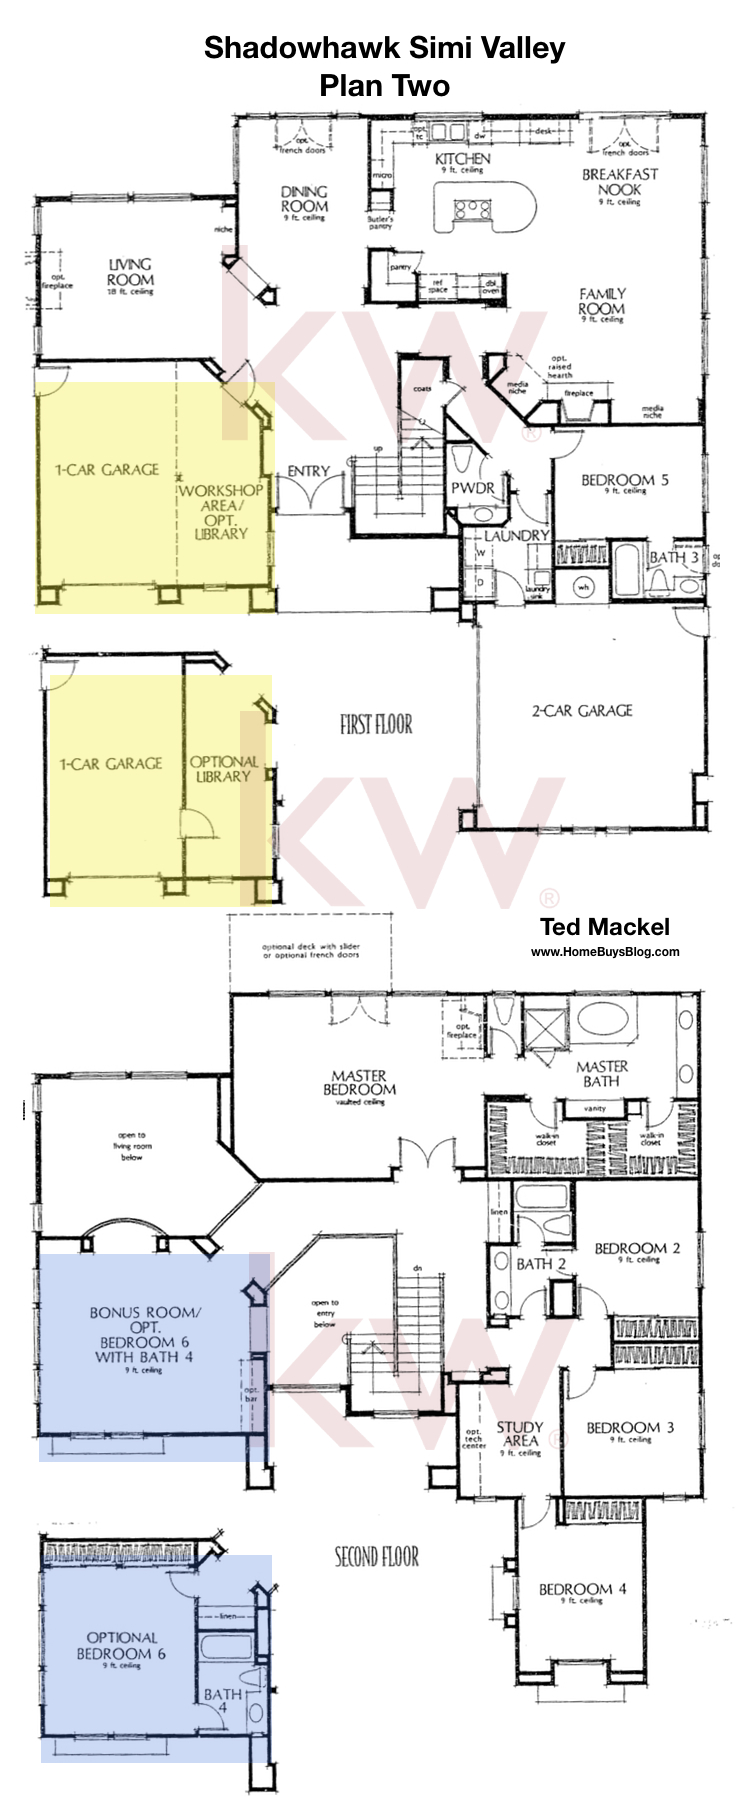 Shadowhawk floor plans simi valley california for Floorplan com